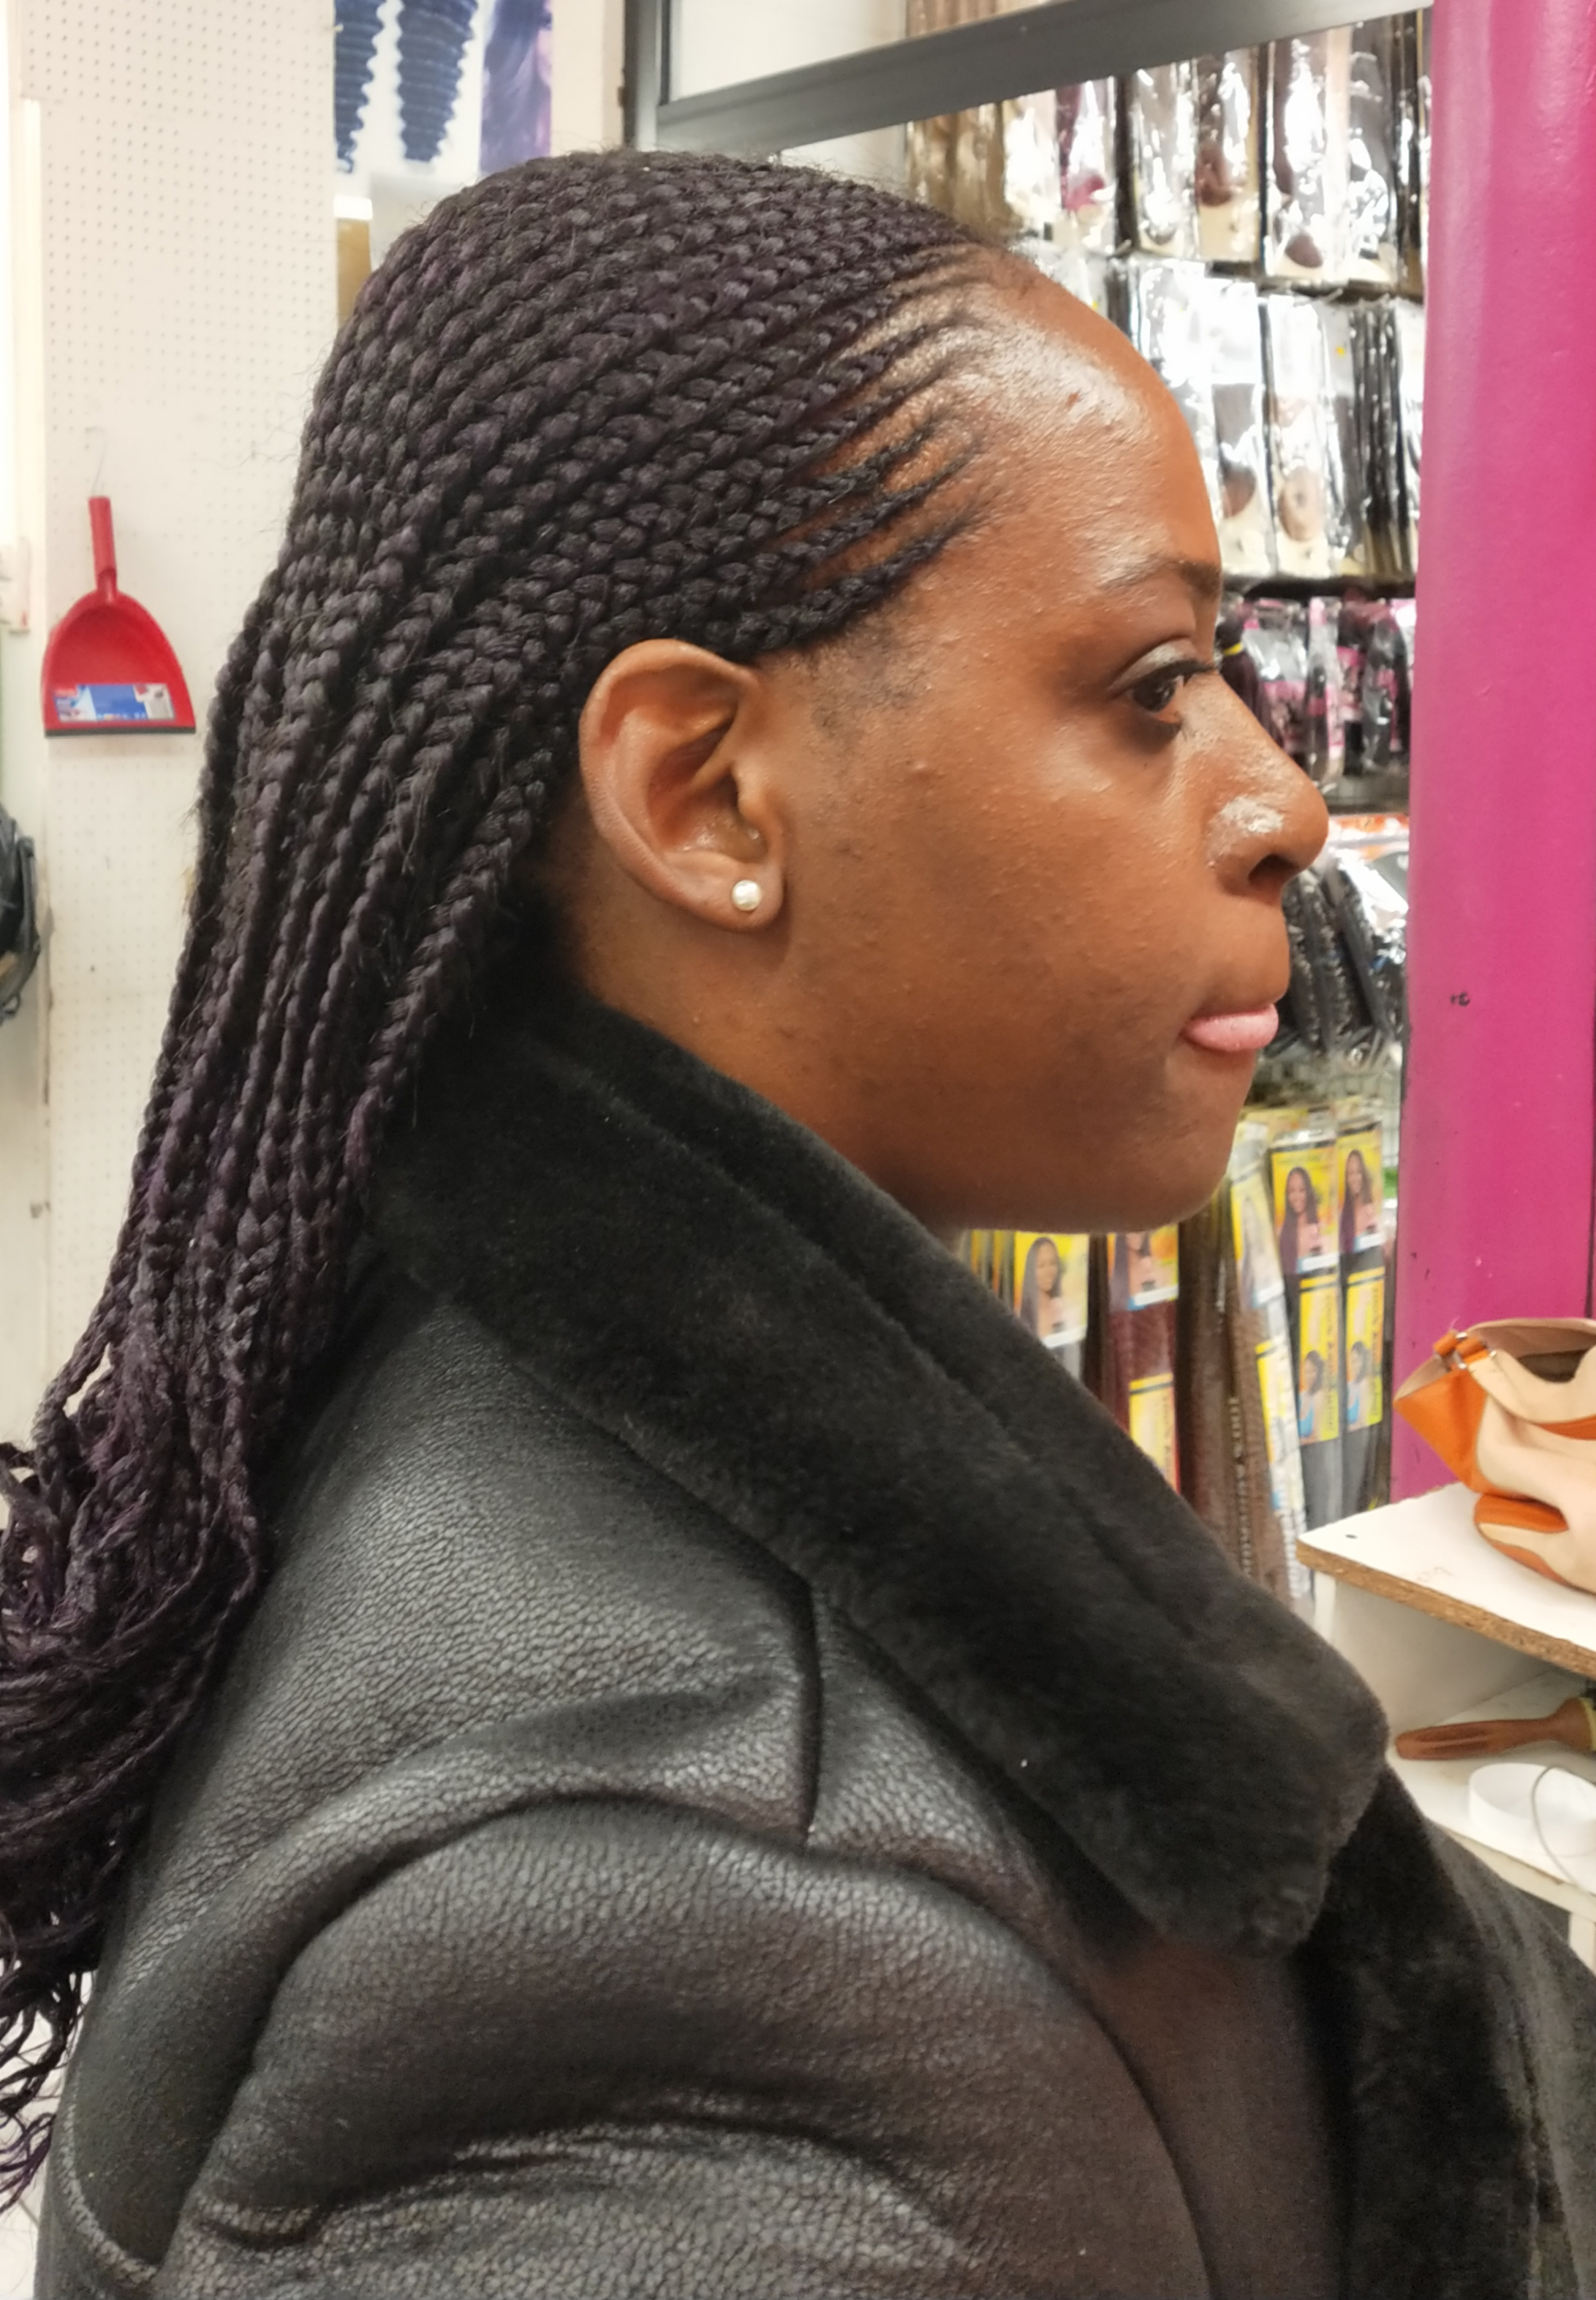 salon de coiffure afro tresse tresses box braids crochet braids vanilles tissages paris 75 77 78 91 92 93 94 95 YQJQGMUX